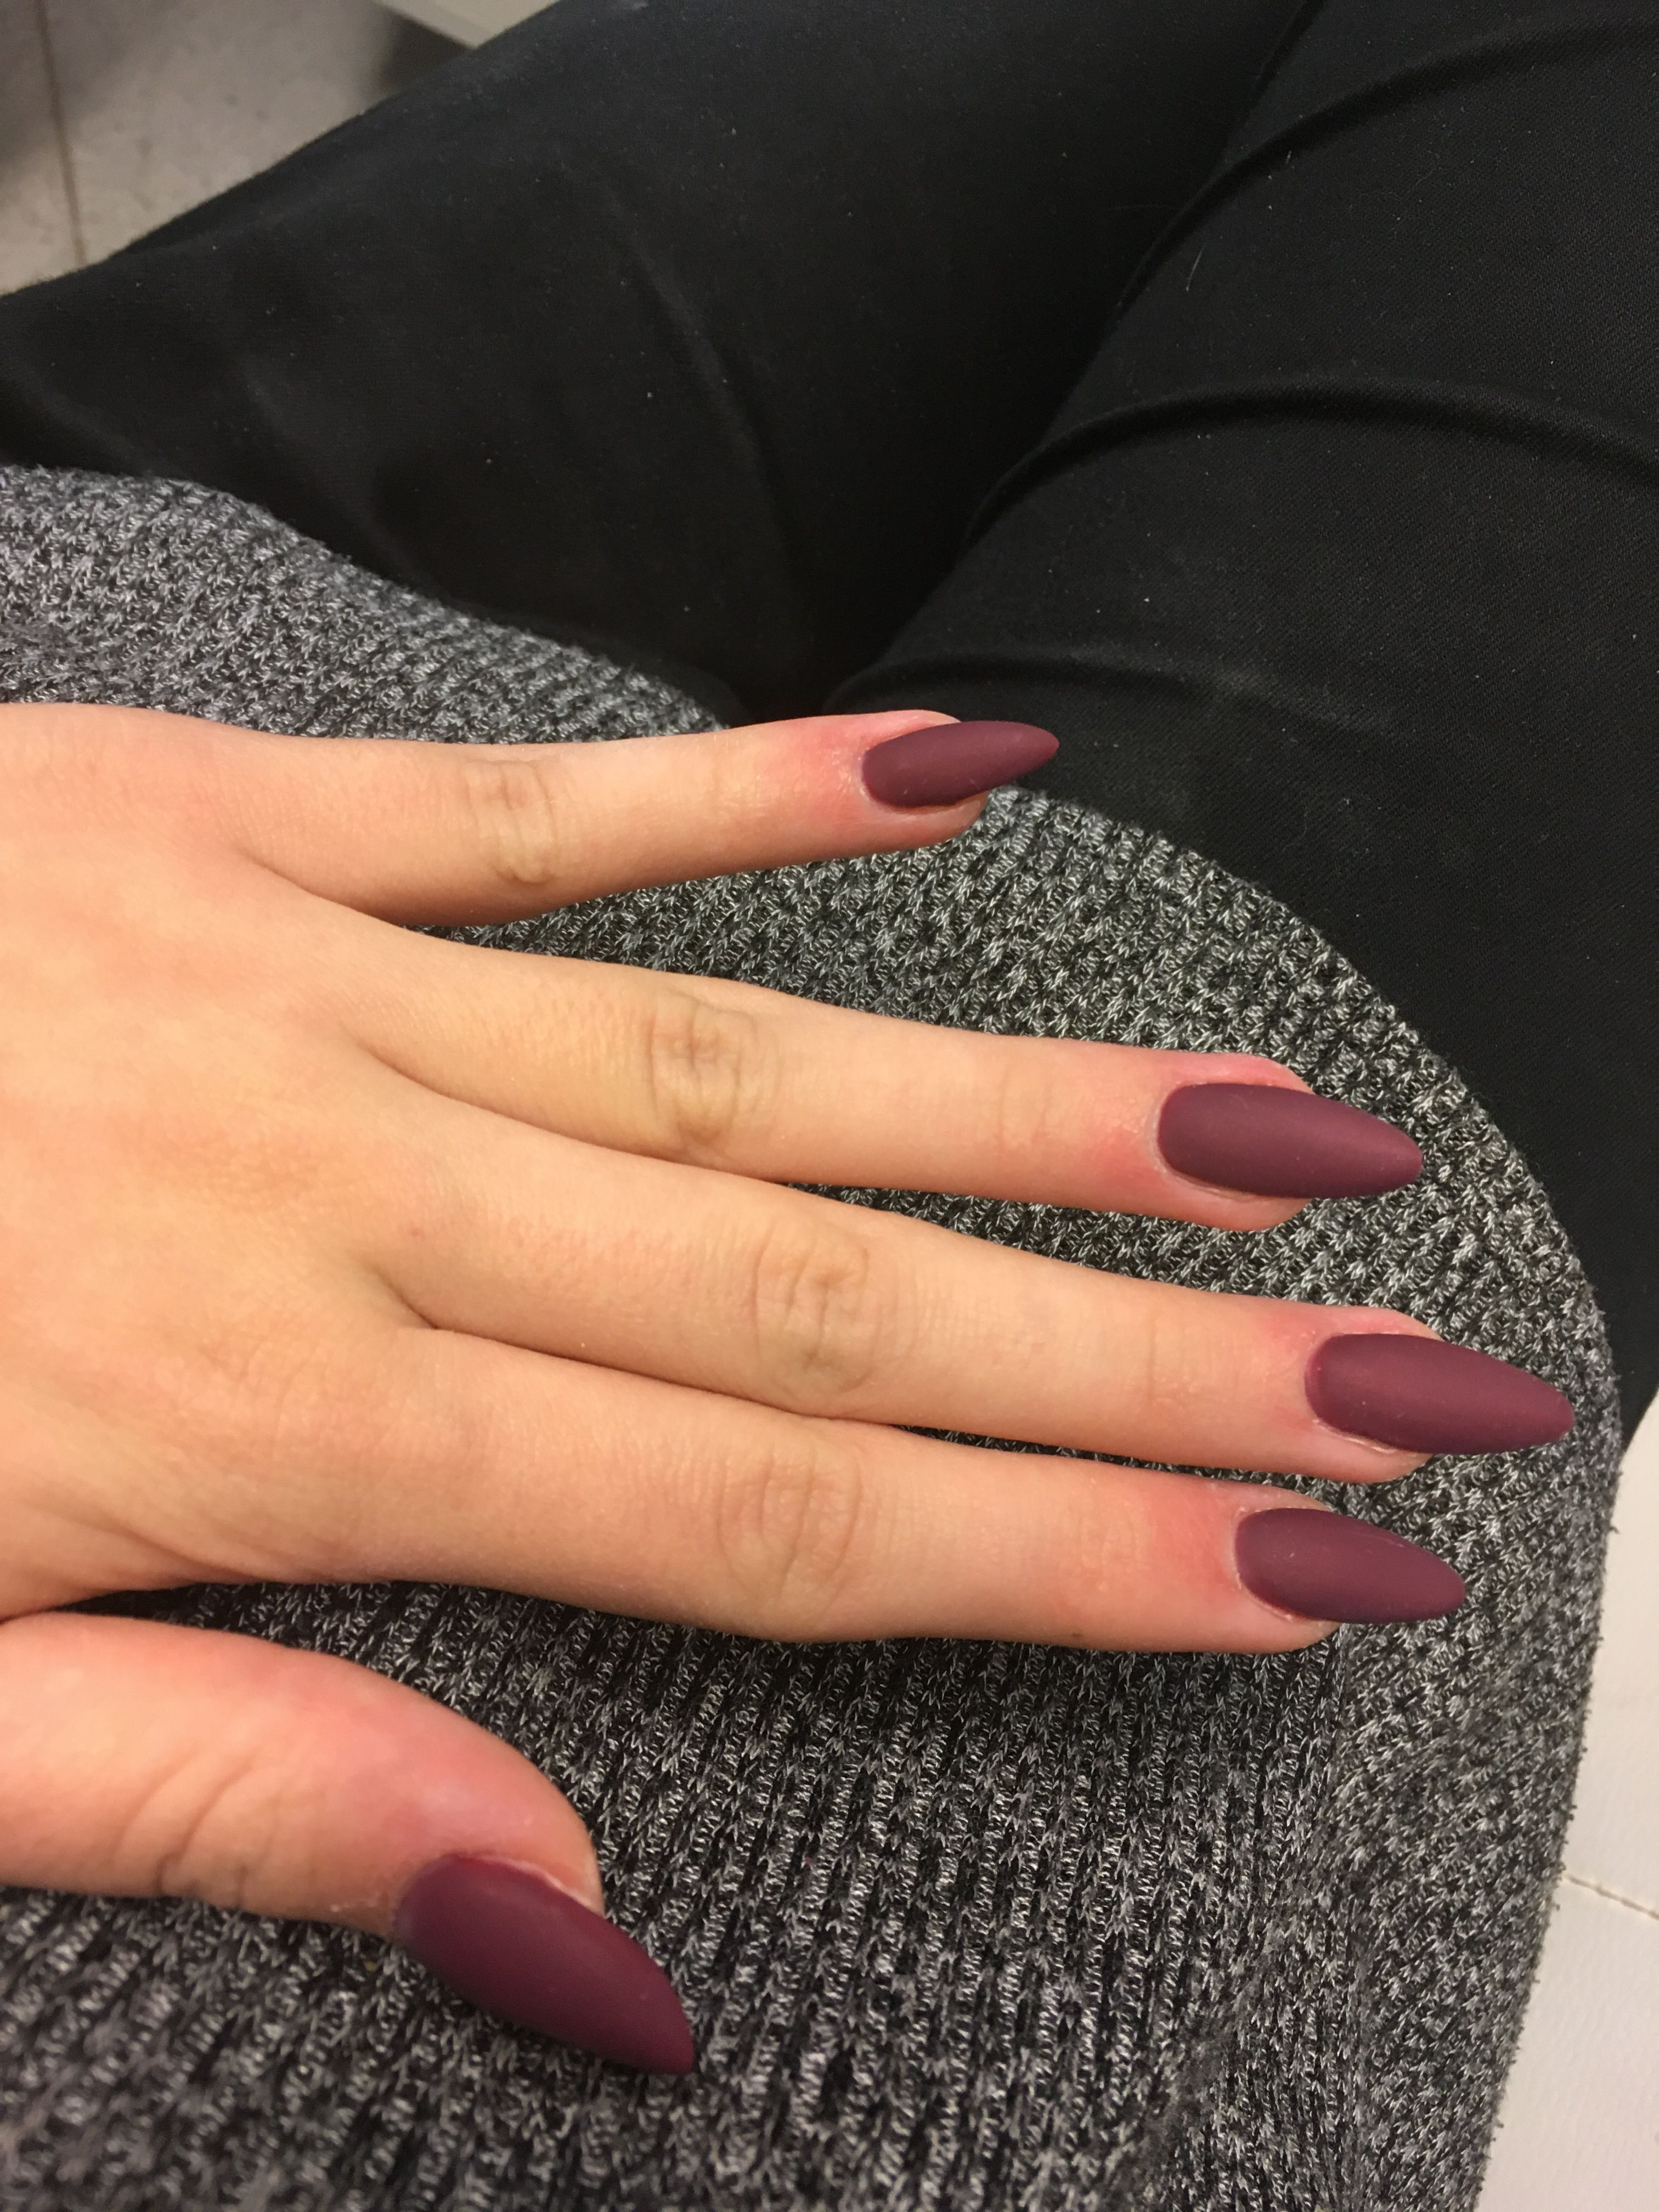 Nails Paznokcie Bordowe 2017 Manicure Pinterest Nails Nail